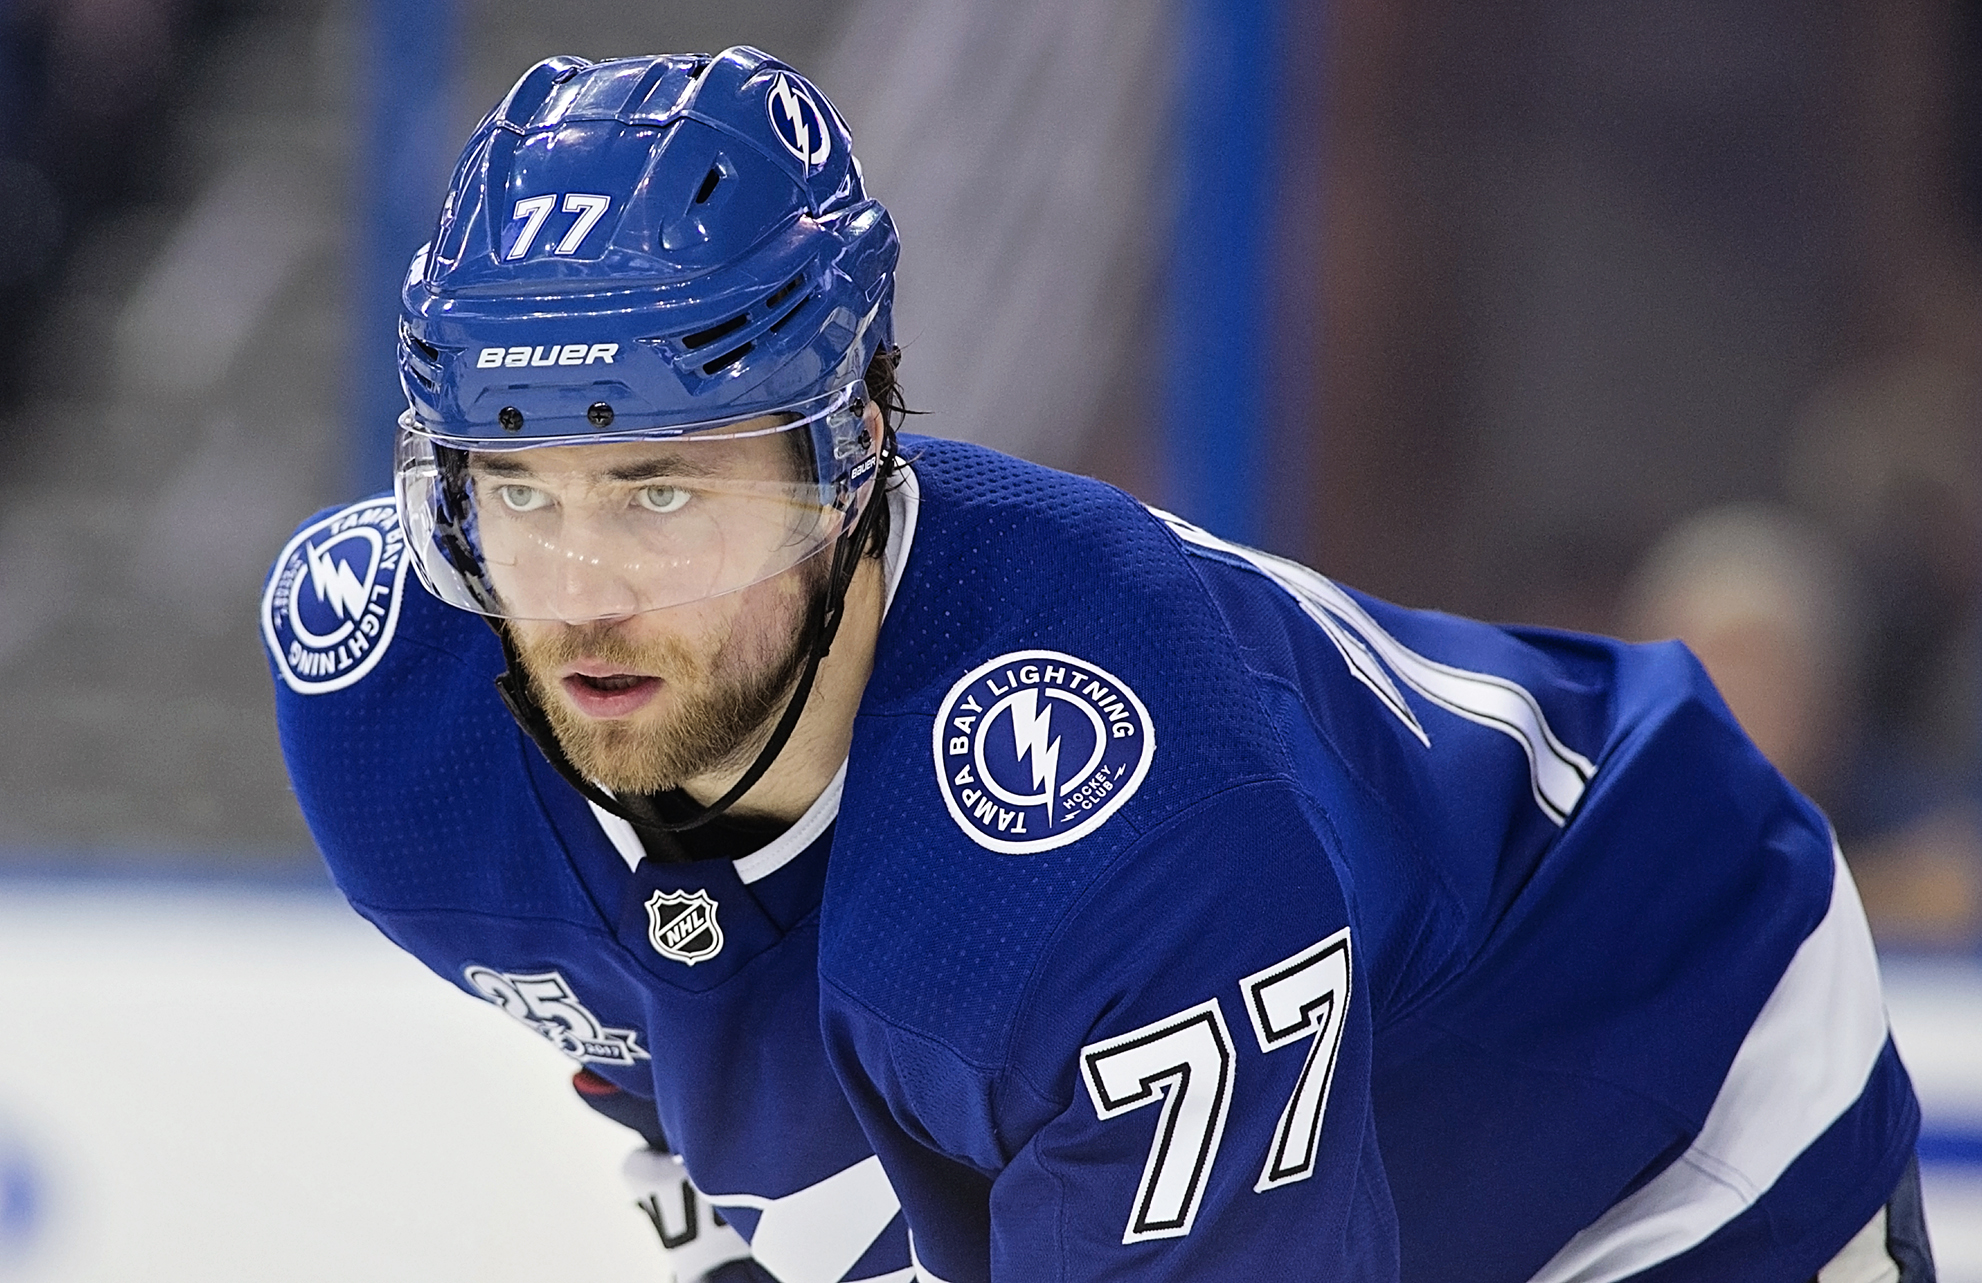 Hedman has anchored an improved defense./CARMEN MANDATO